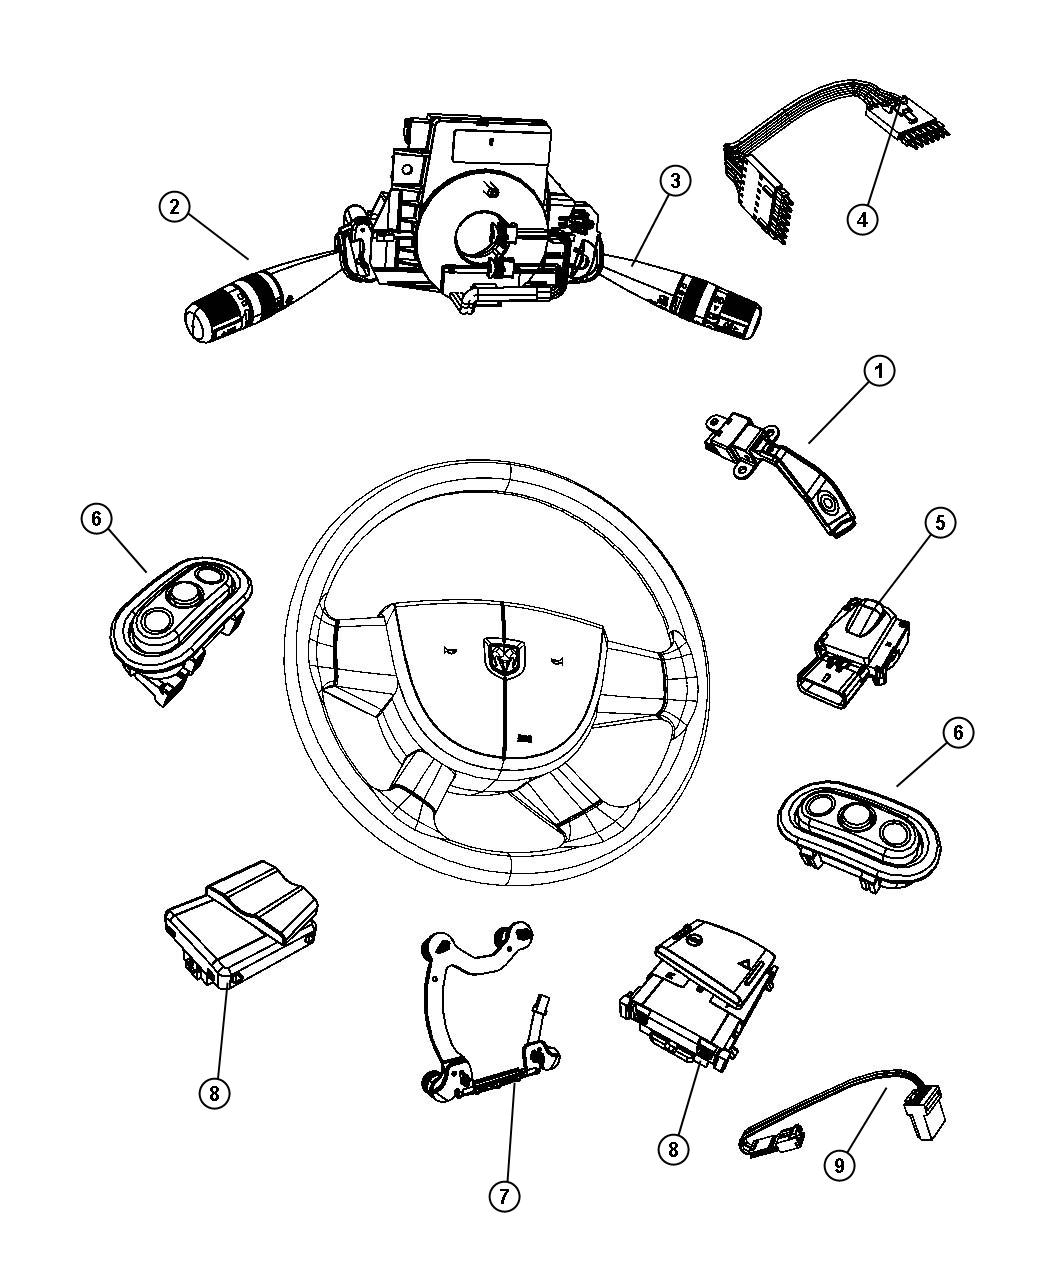 cj5 steering column diagram telescope optics ray jeep parts engine and